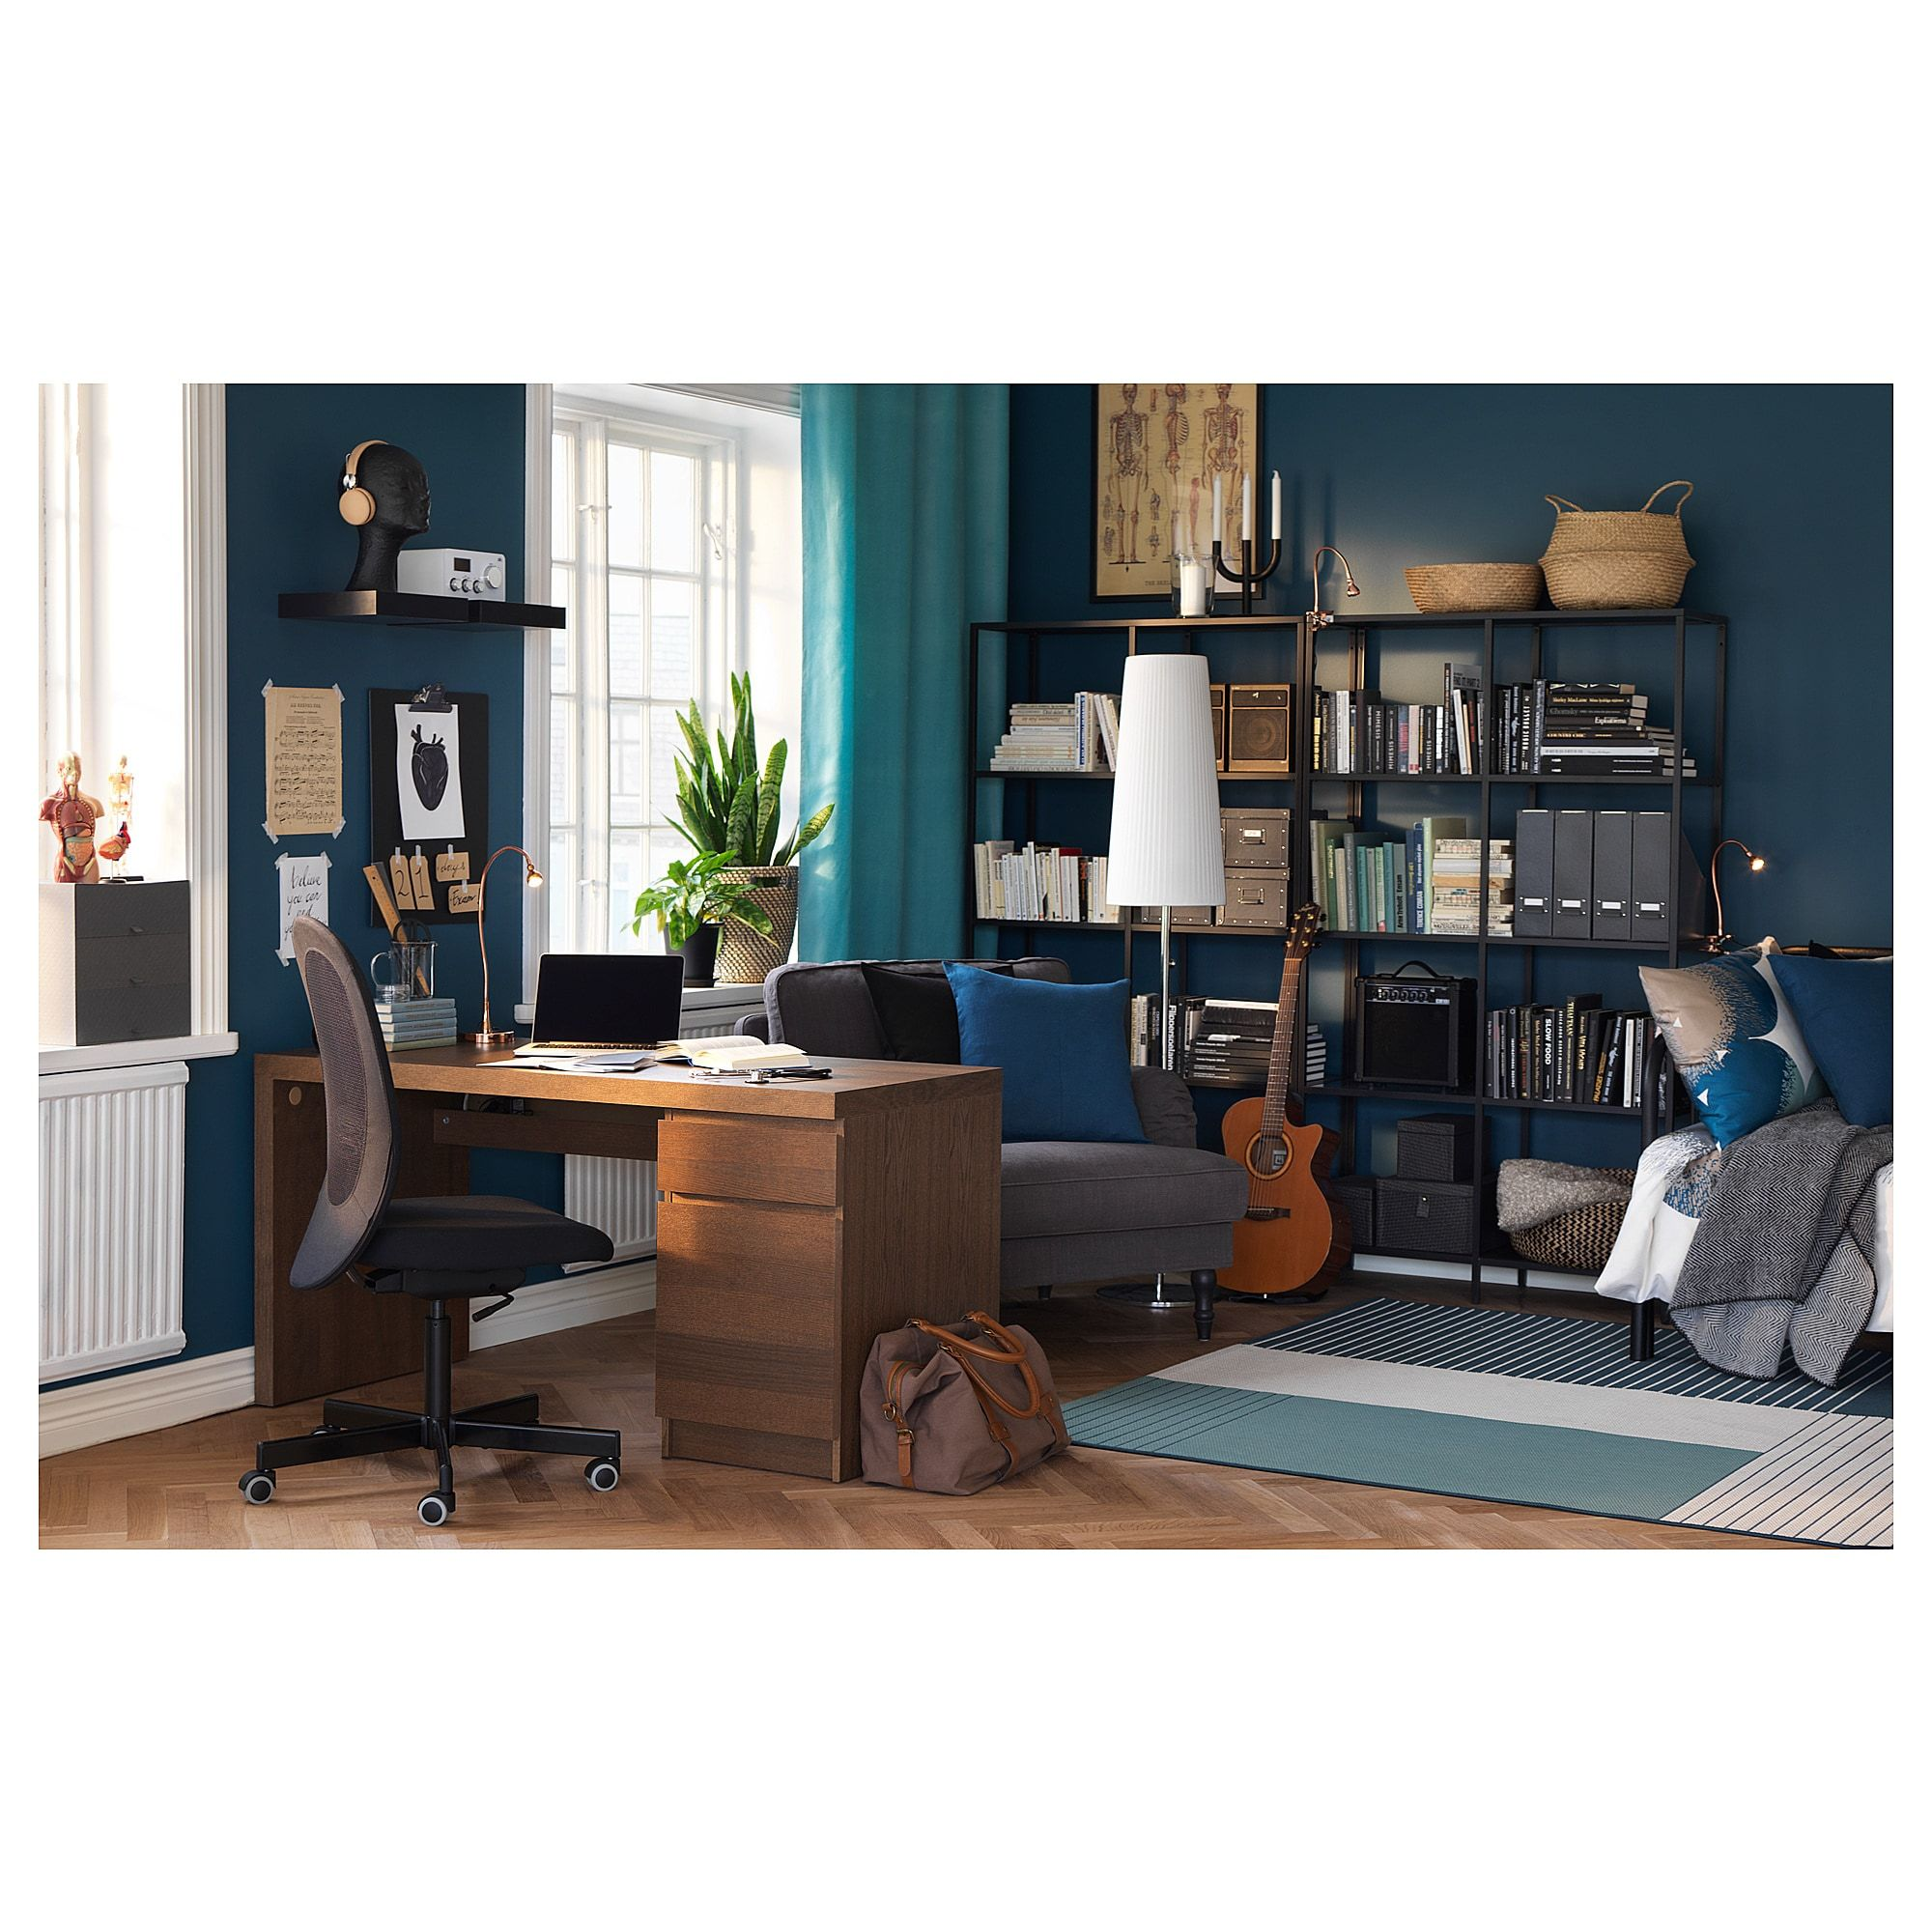 sports shoes a5c00 9cf1f IKEA - MALM Desk brown stained ash veneer | Products in 2019 ...